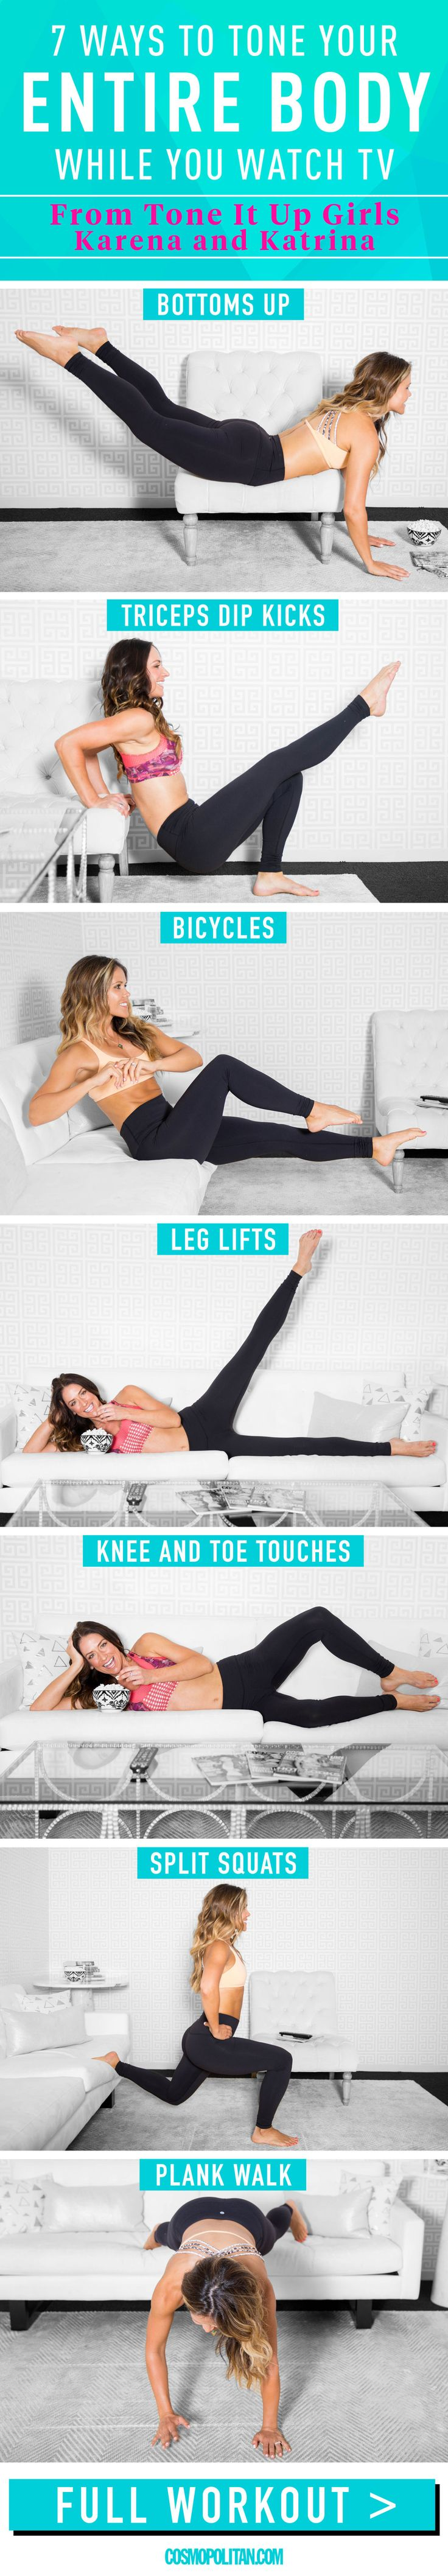 EXERCISES YOU CAN DO WHILE YOU WATCH TV: Tone It Up founders Katrina Scott and Karena Dawn created this workout so you can binge watch Netflix while going after your fitness goals. This workout includes 7 living-room friendly moves. Do 10 to 15 reps of each move on each side, then repeat the entire sequence at least twice. Click through for the full workout, fitness tips, and instructional gifs that teach you how to correctly do each move.